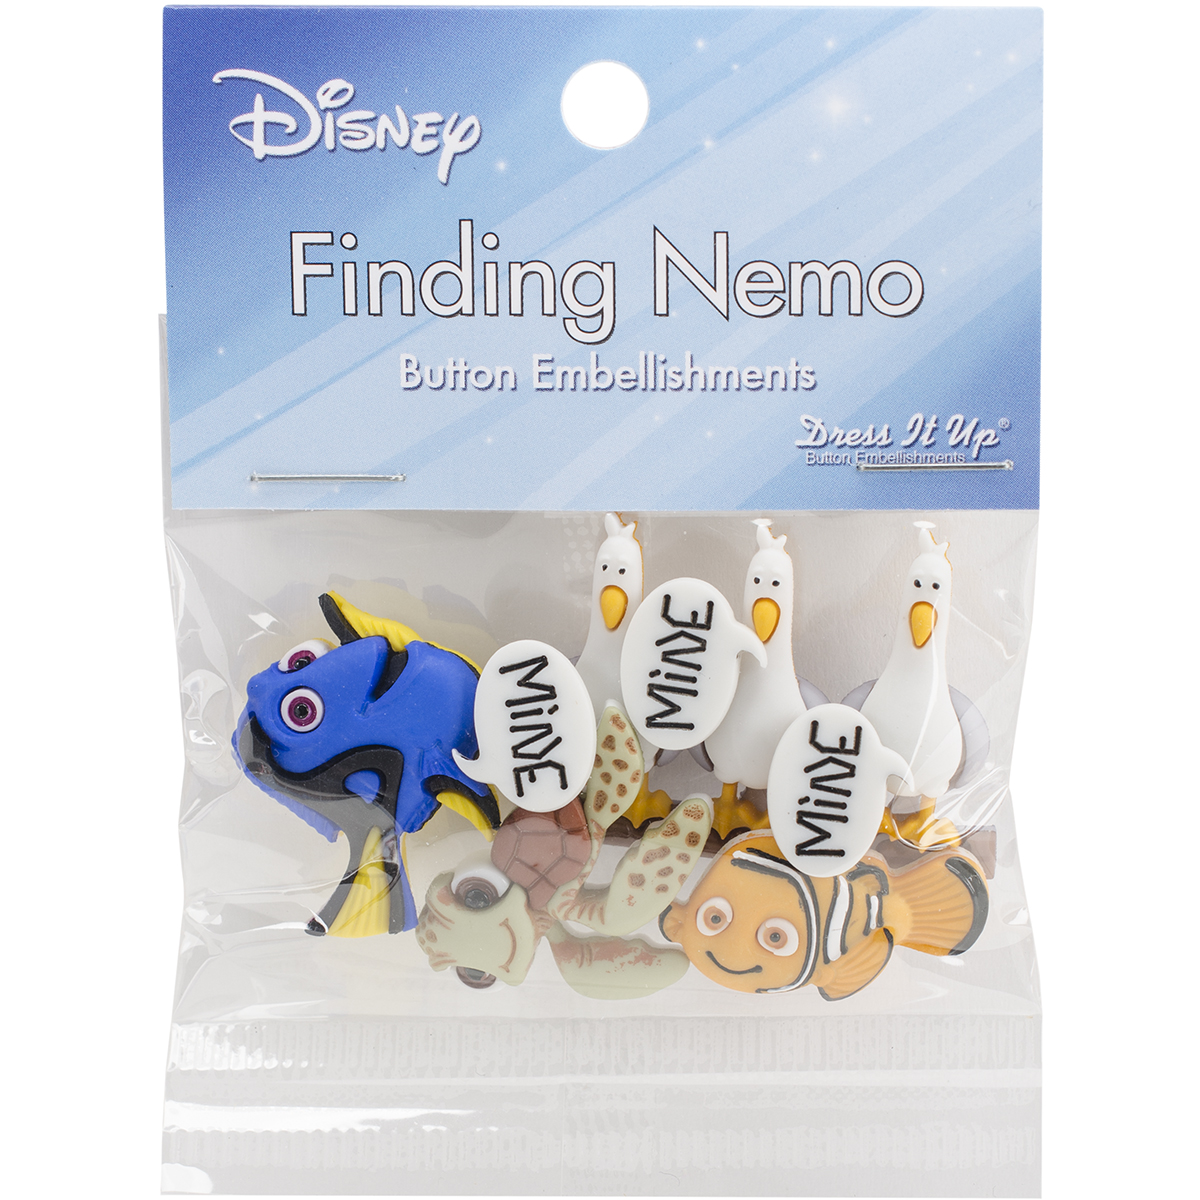 Dress It Up Licensed Embellishments-Disney Finding Nemo - image 1 of 1